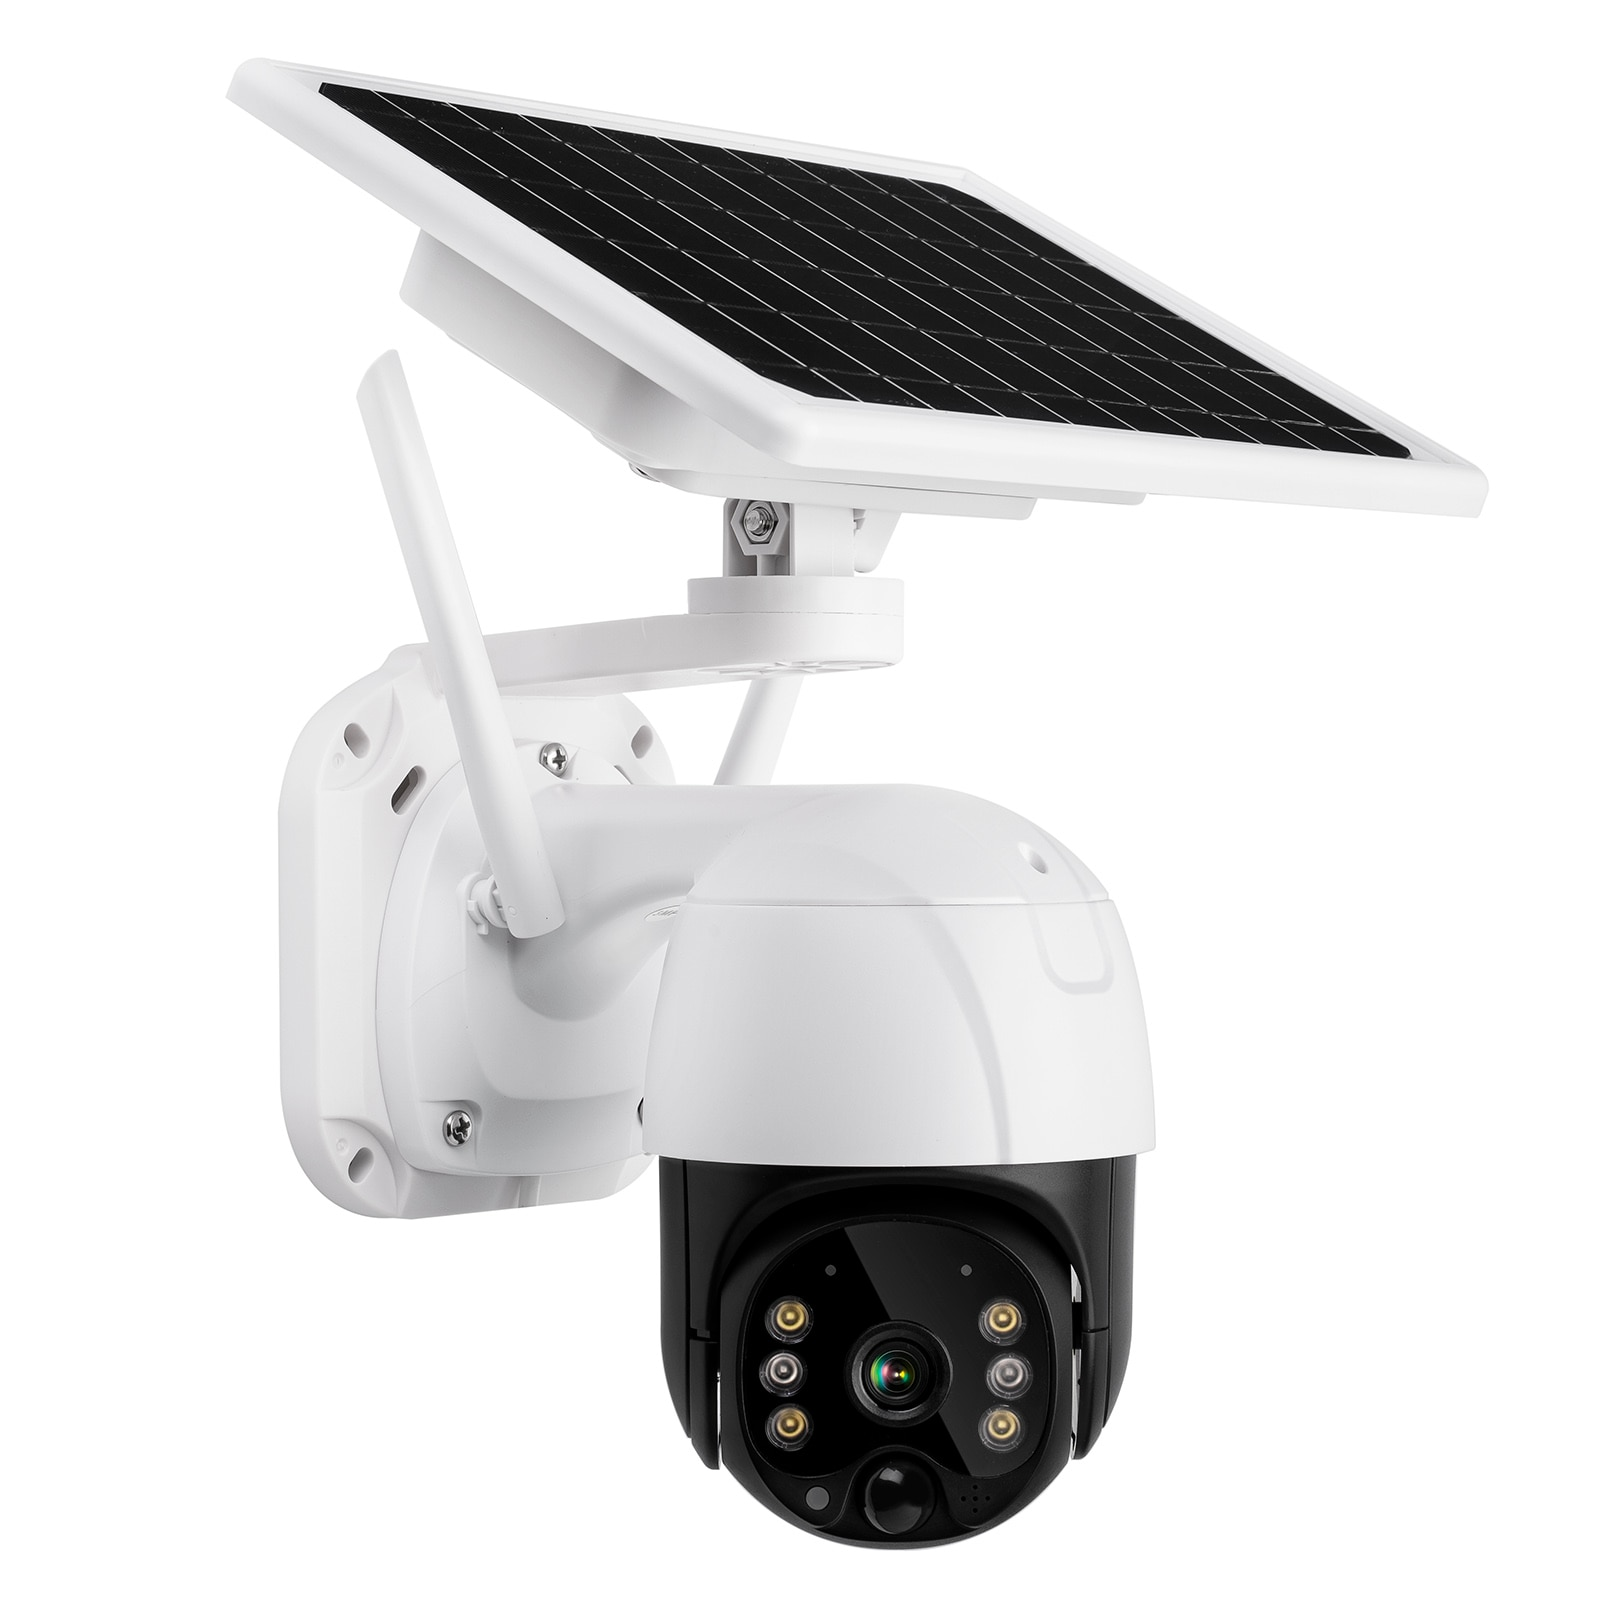 4G Sim Card WiFi IP PTZ Camera 8W Solar Panel Rechargeable Battery Motion Detection PIR Alarm Starlight Home P2P Security Camera